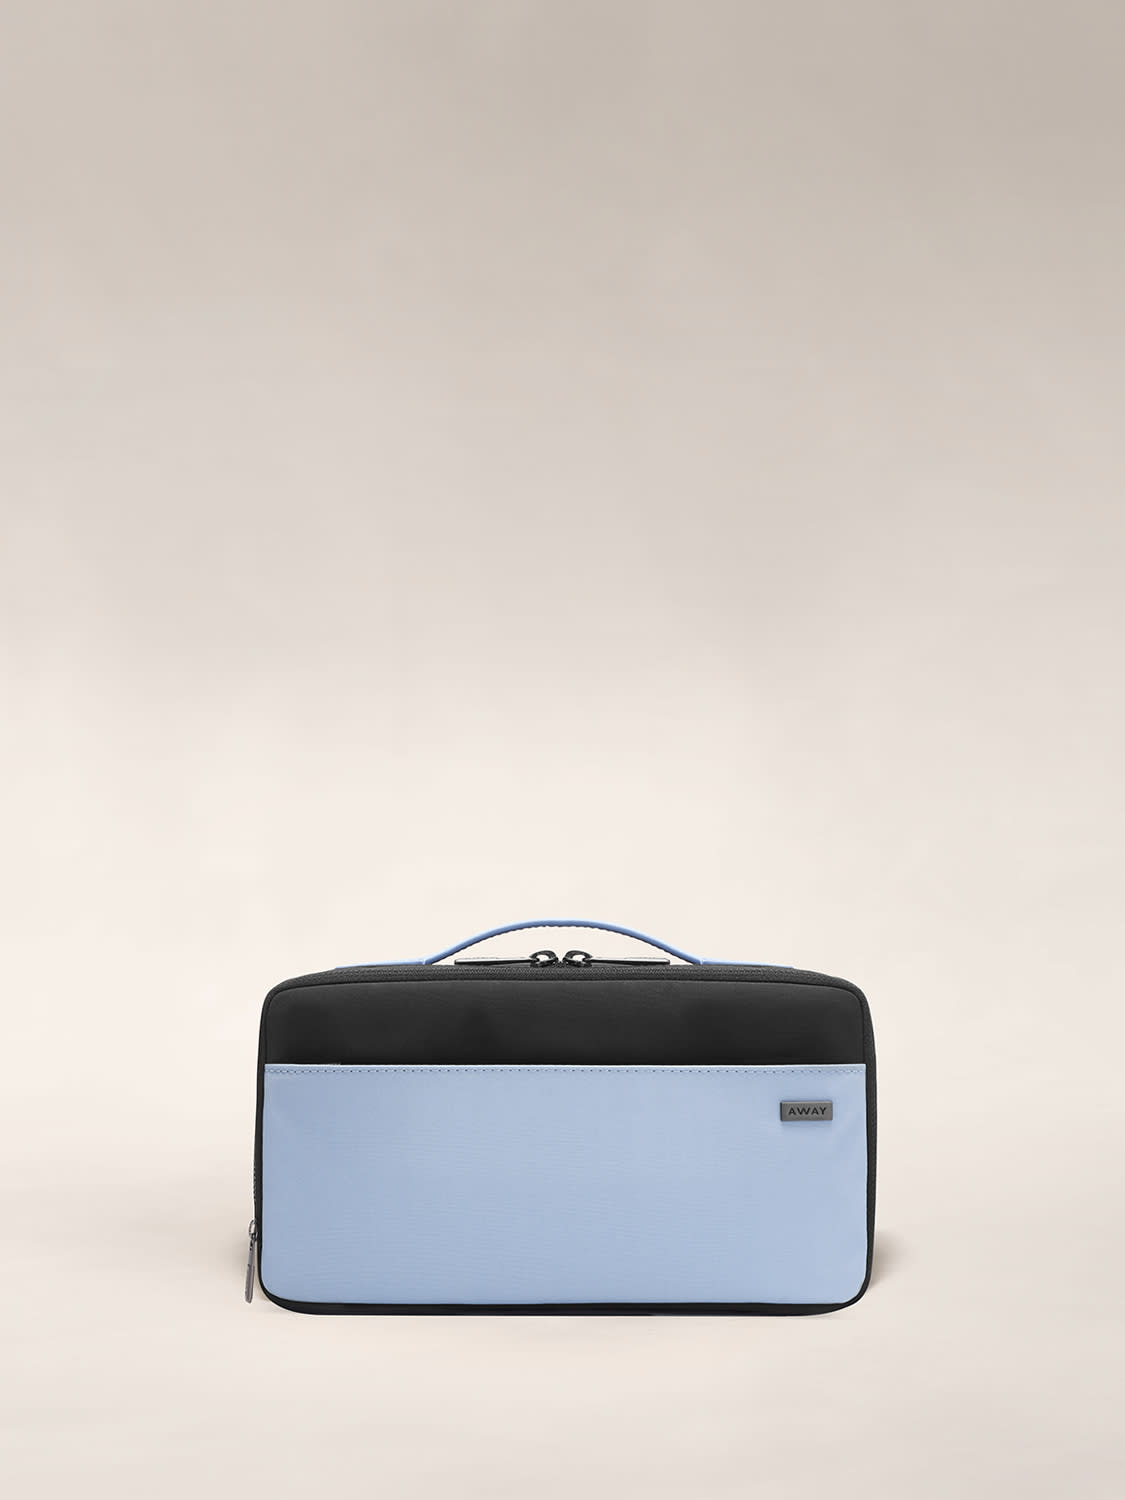 Front view of the Expandable Toiletry Case in black and periwinkle